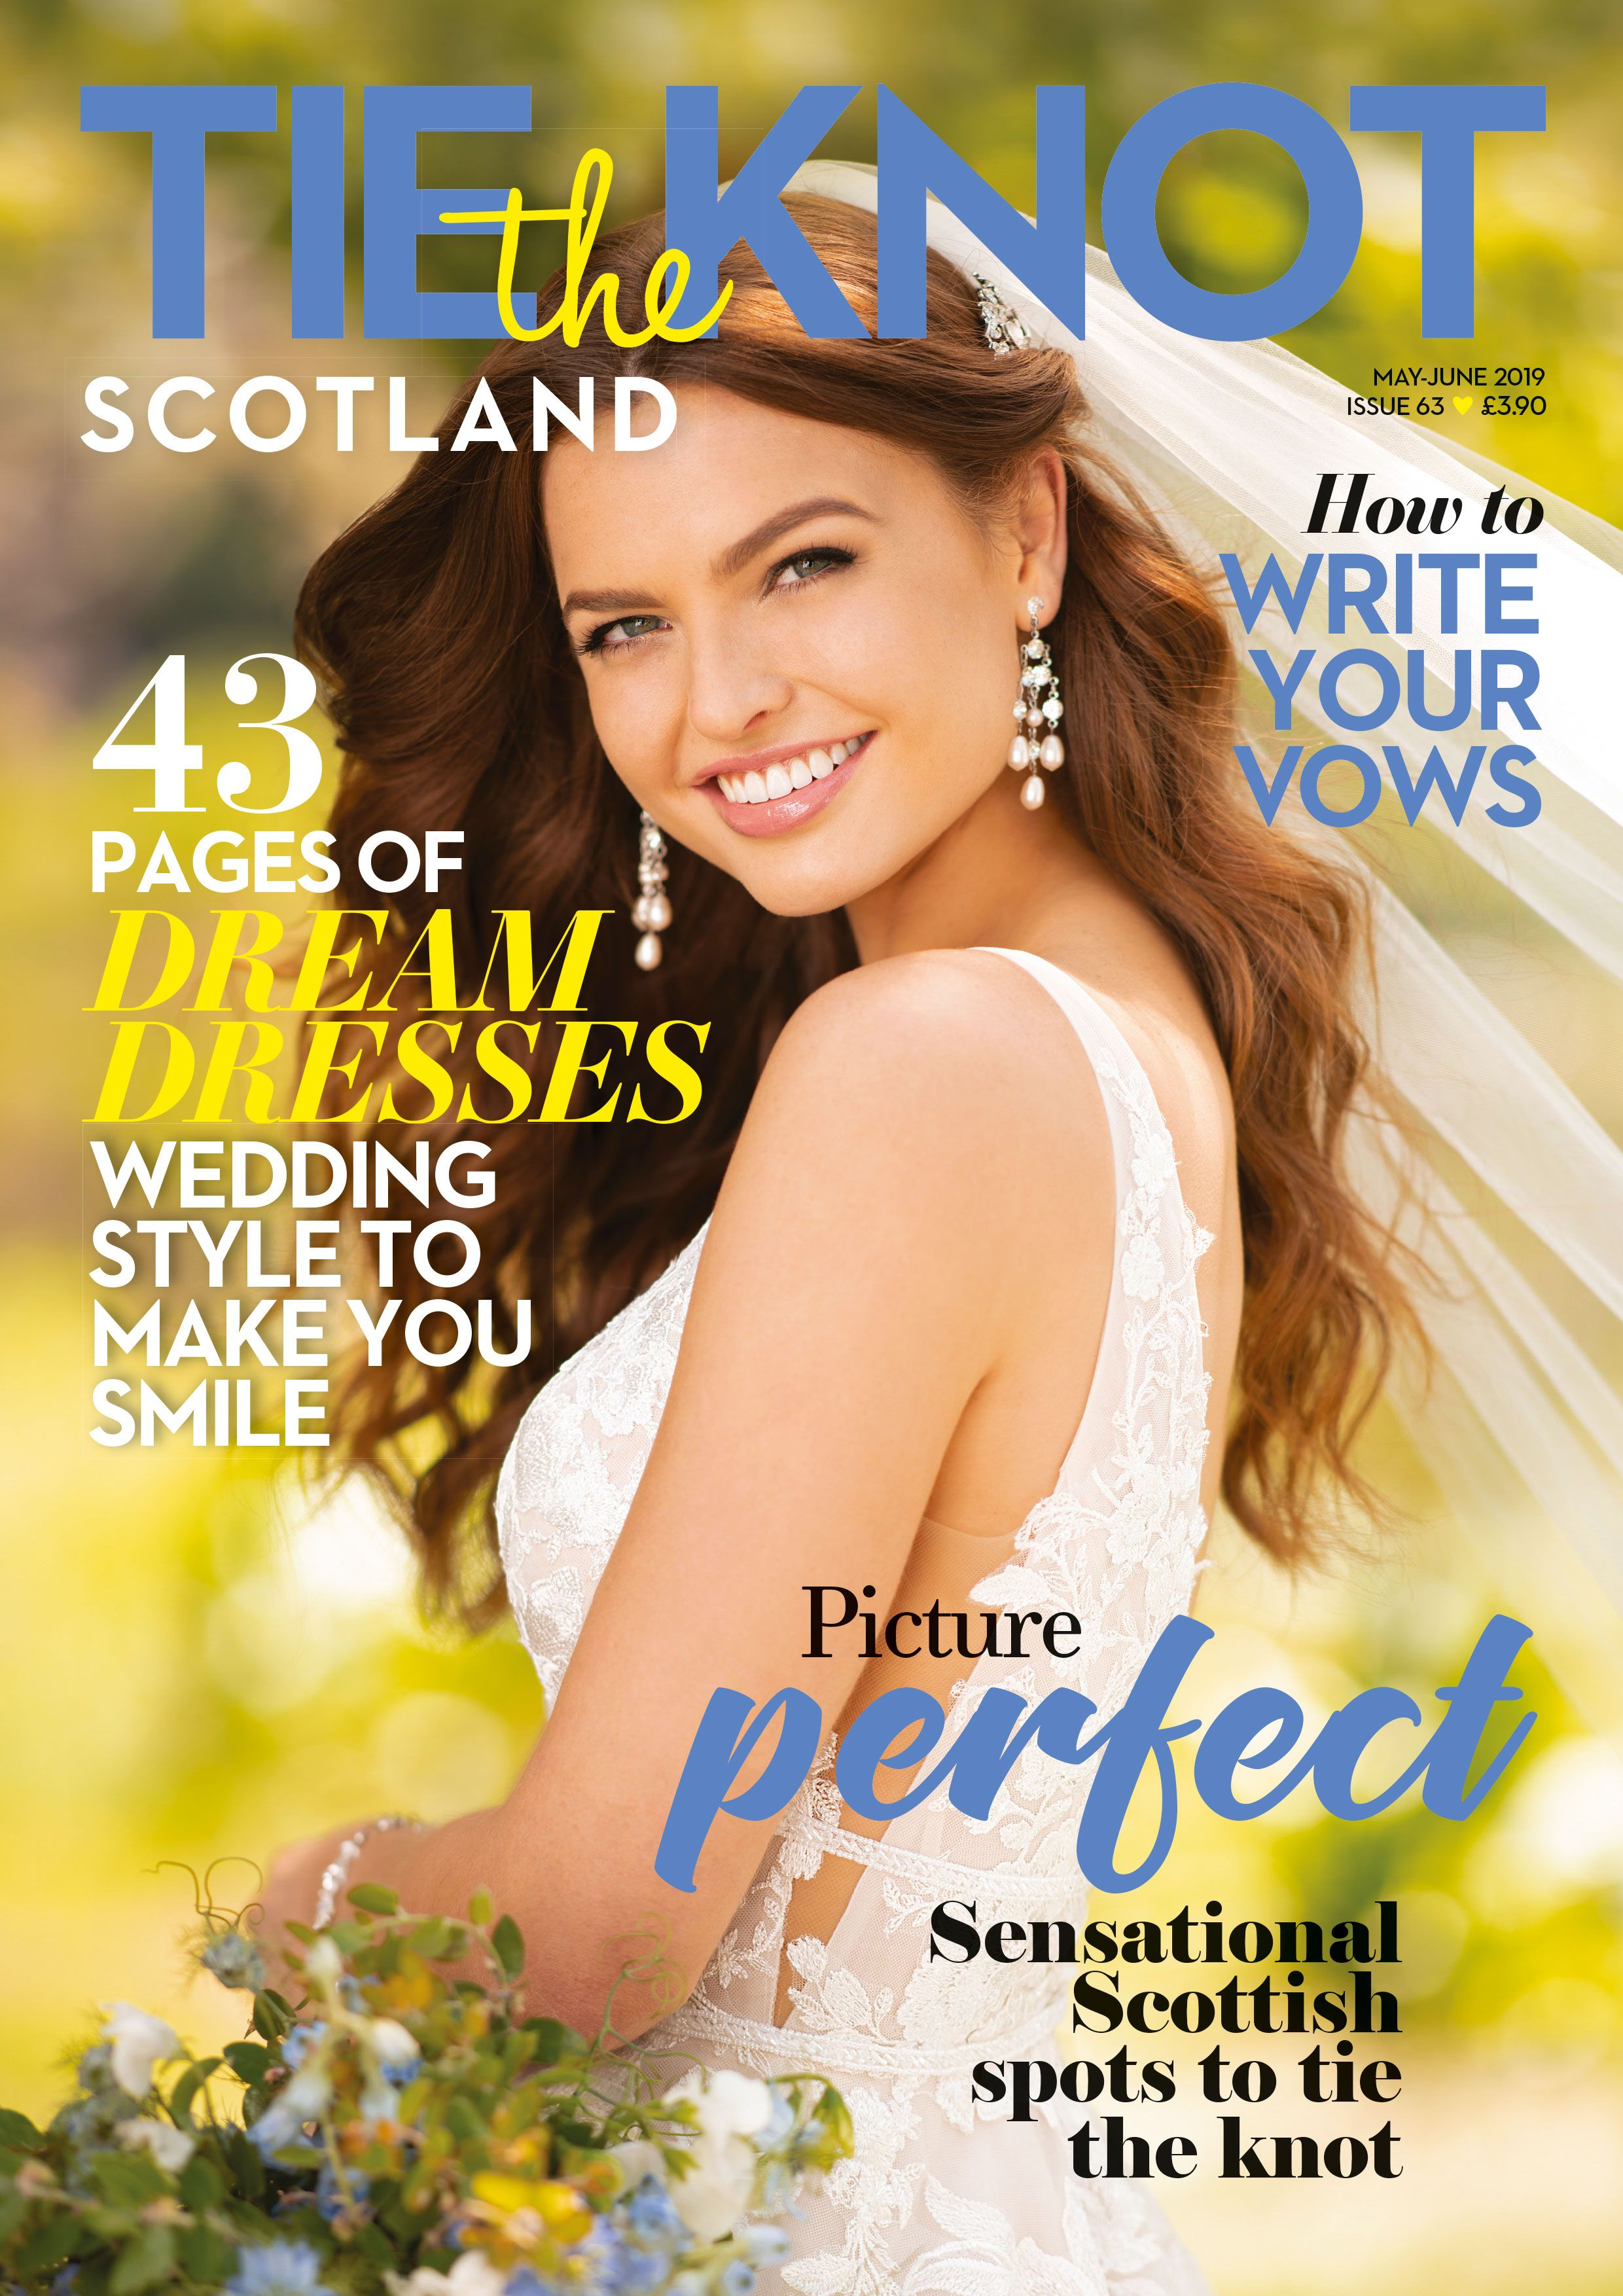 Issue 63 Tie the knots, Scotland, Wedding planning advice